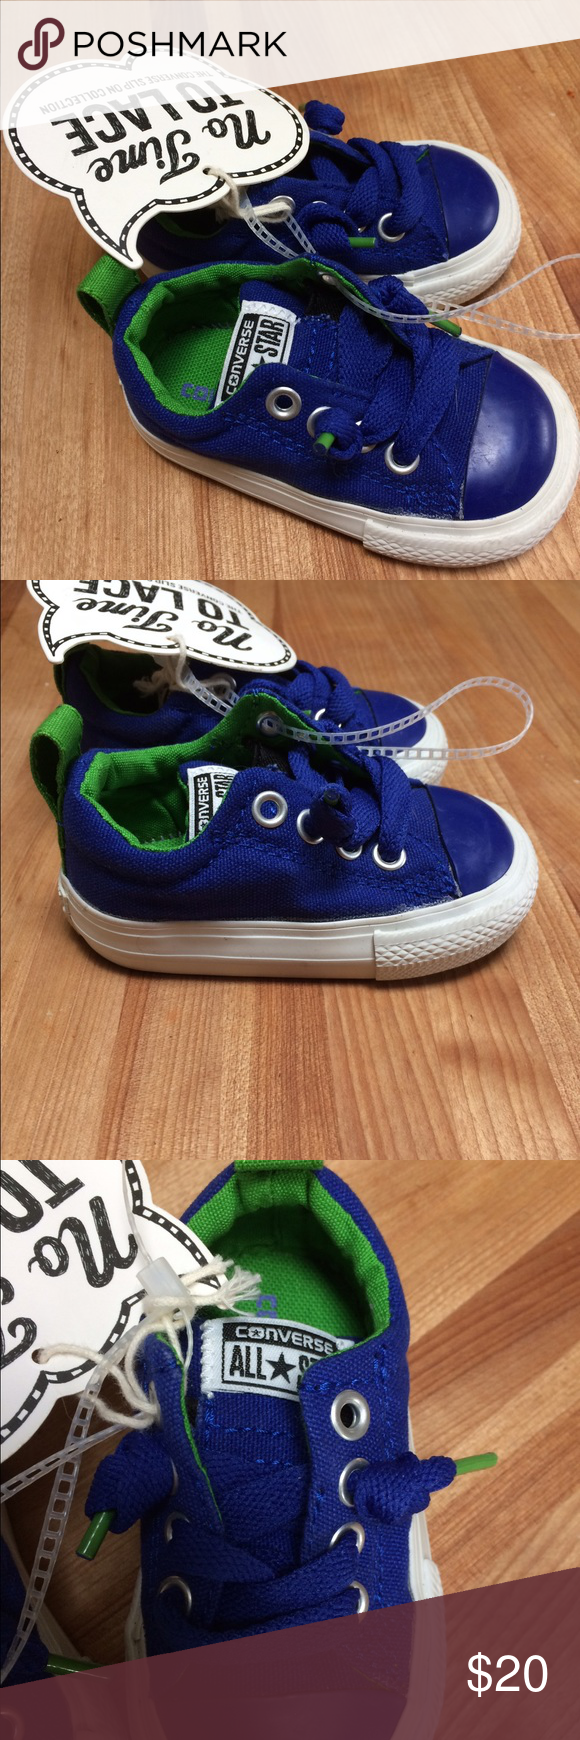 Baby Converse Royal blue with green inside. Slip on style ...